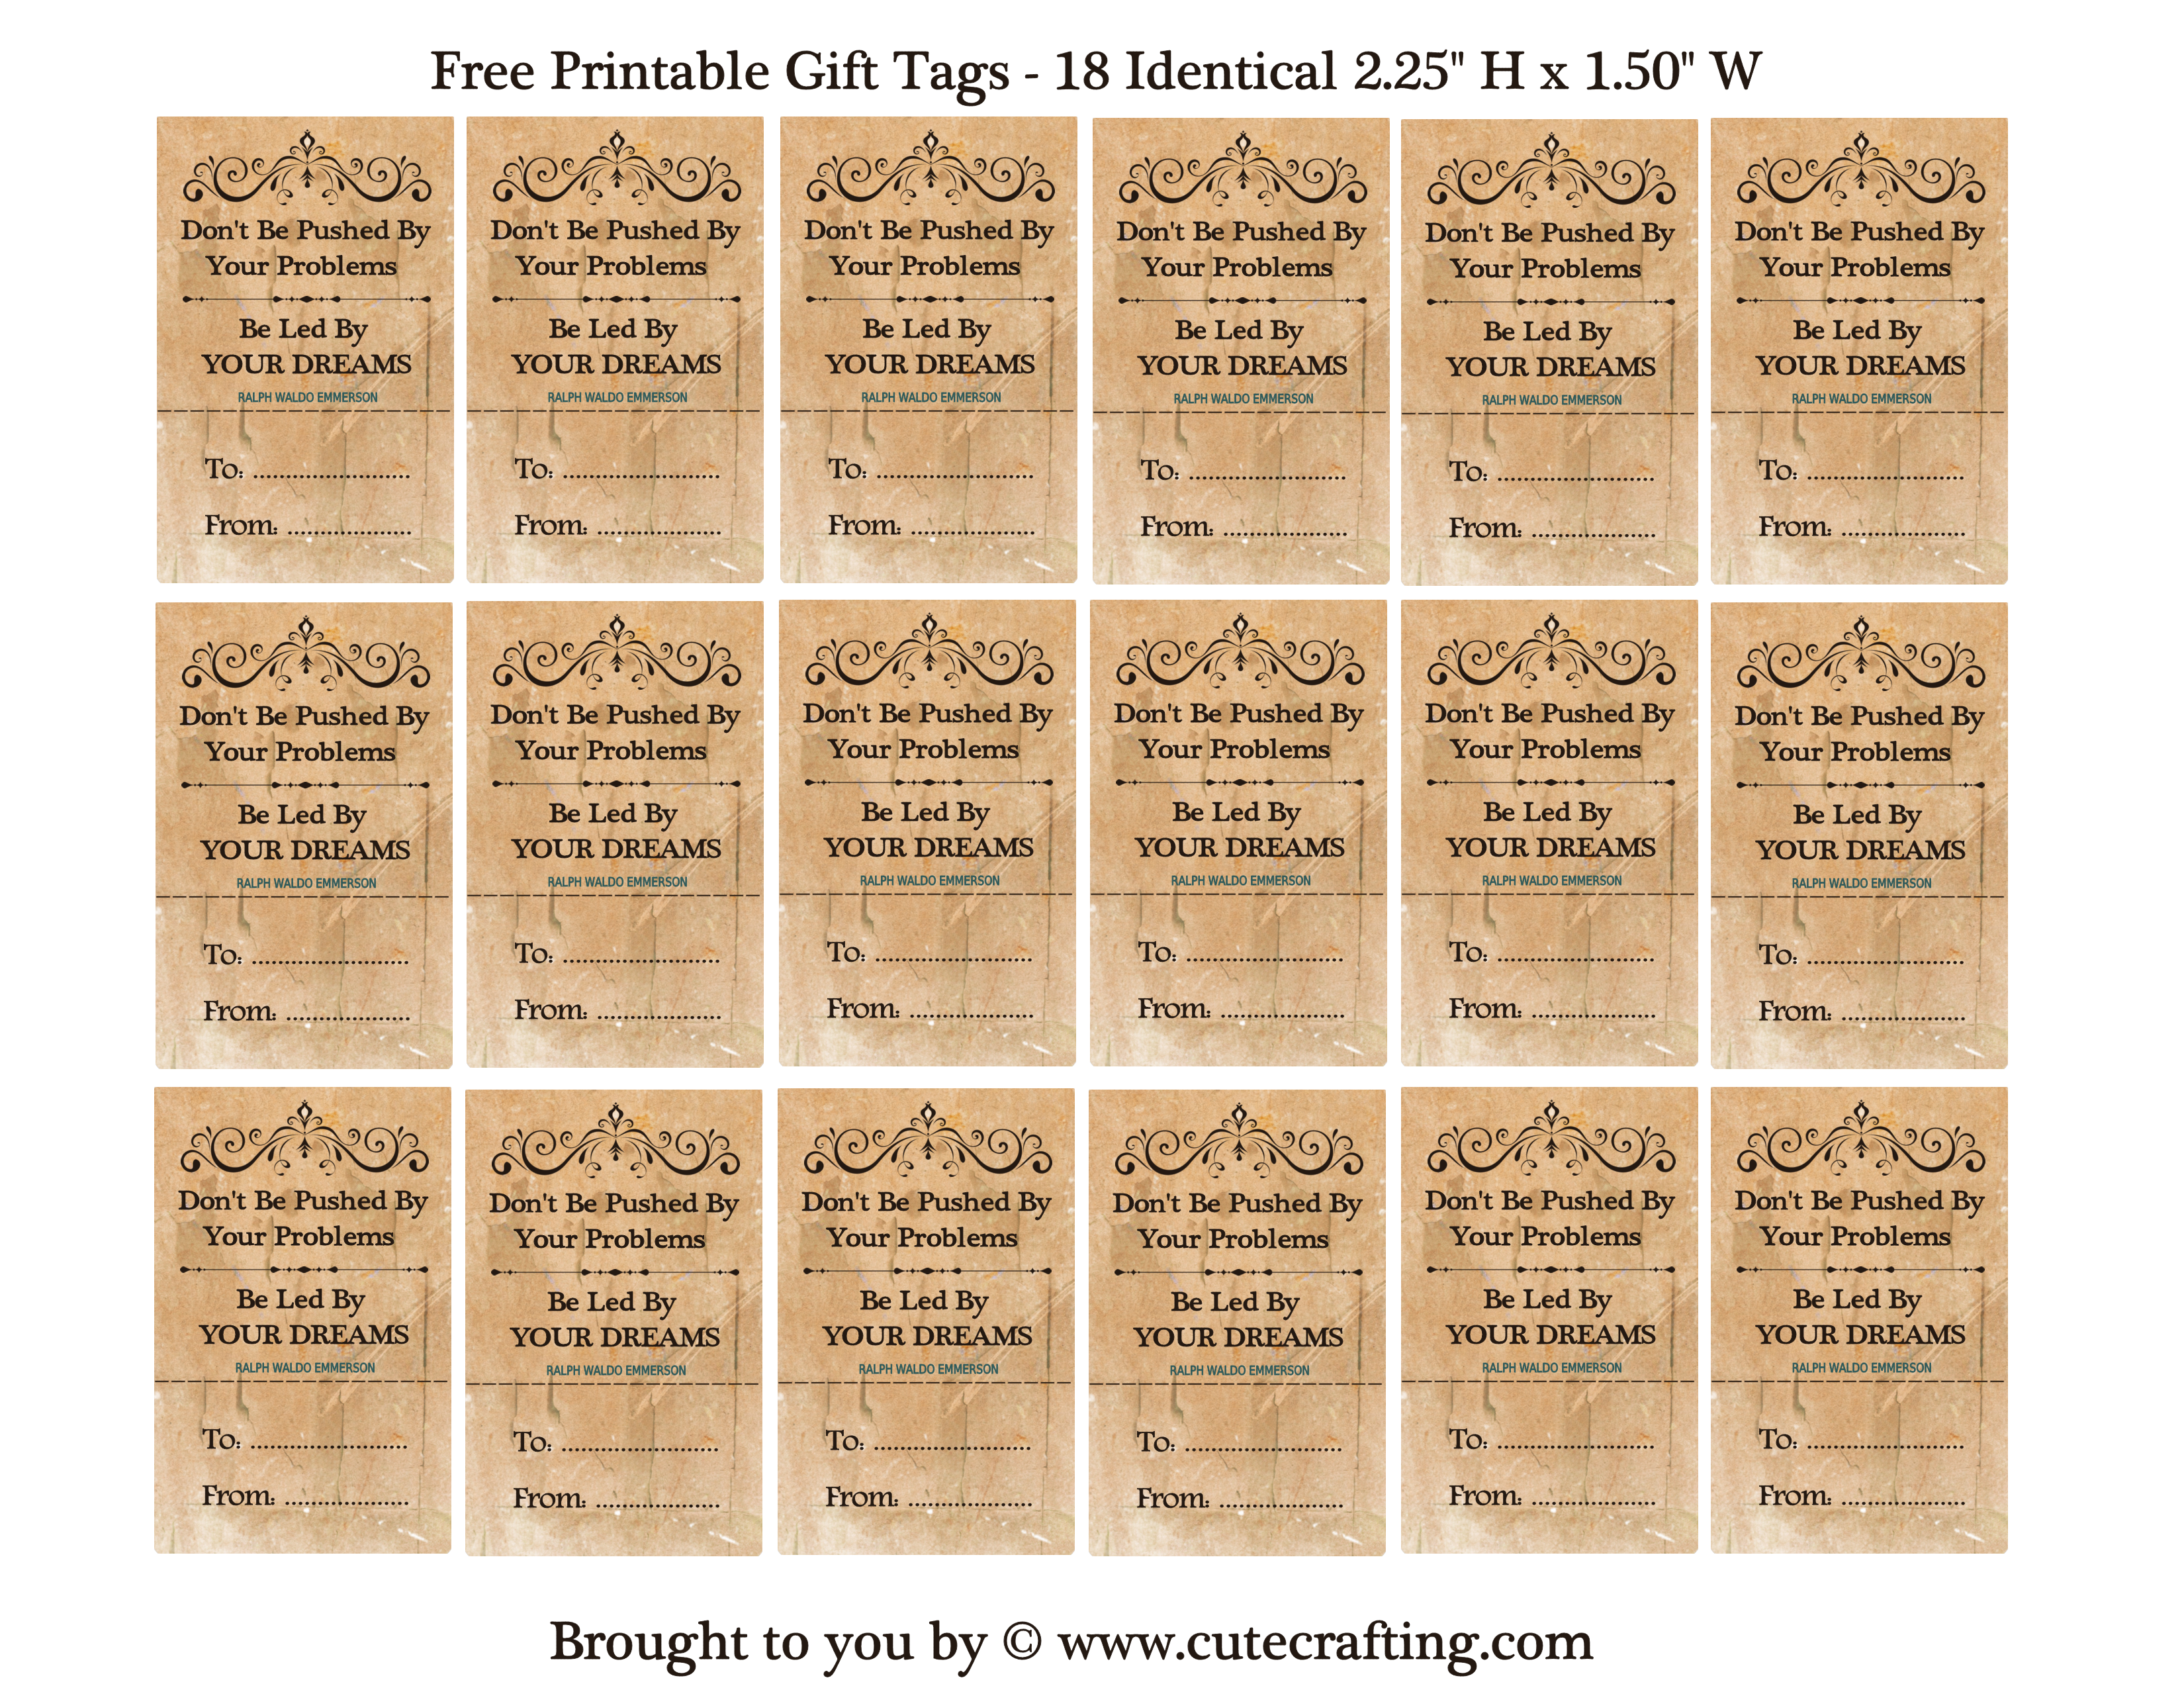 Free printable tags diy crafts birthday party favors no peeking tags negle Image collections